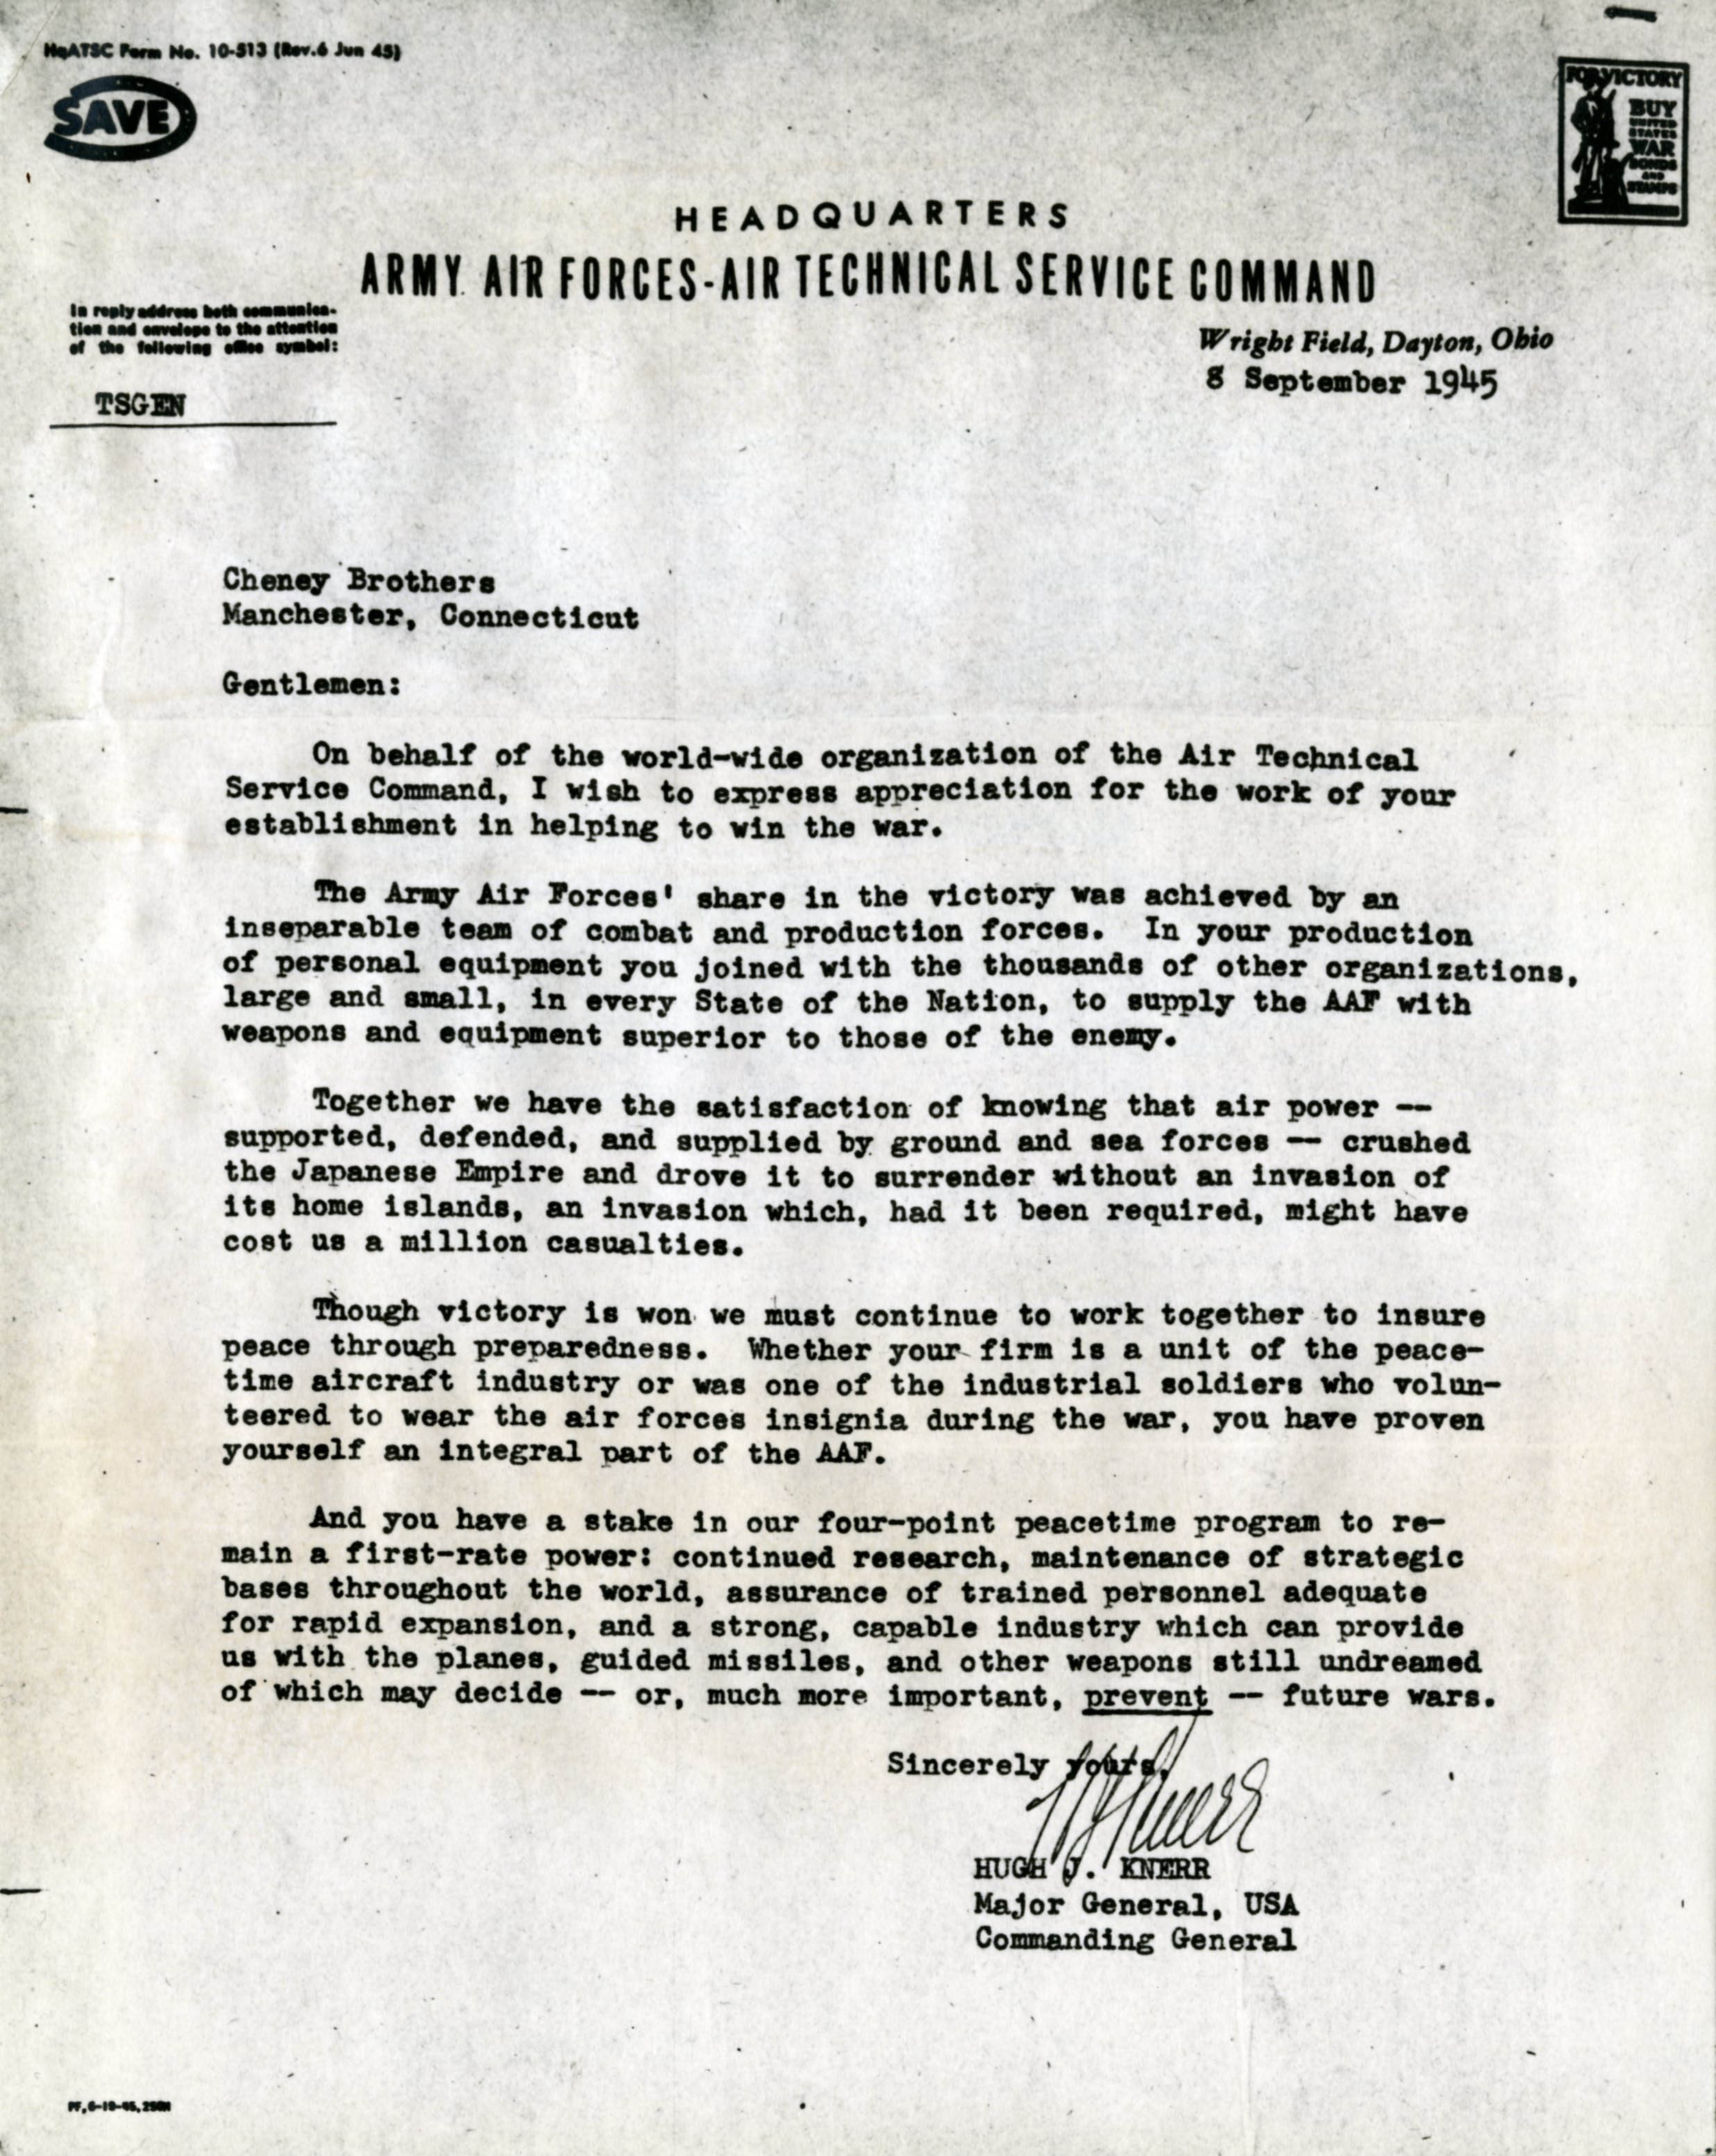 Letter from Hugh Knerr of the Army Air Forces commending Cheney Brothers on their wartime manufacturing of parachutes during World War II, September 8, 1945